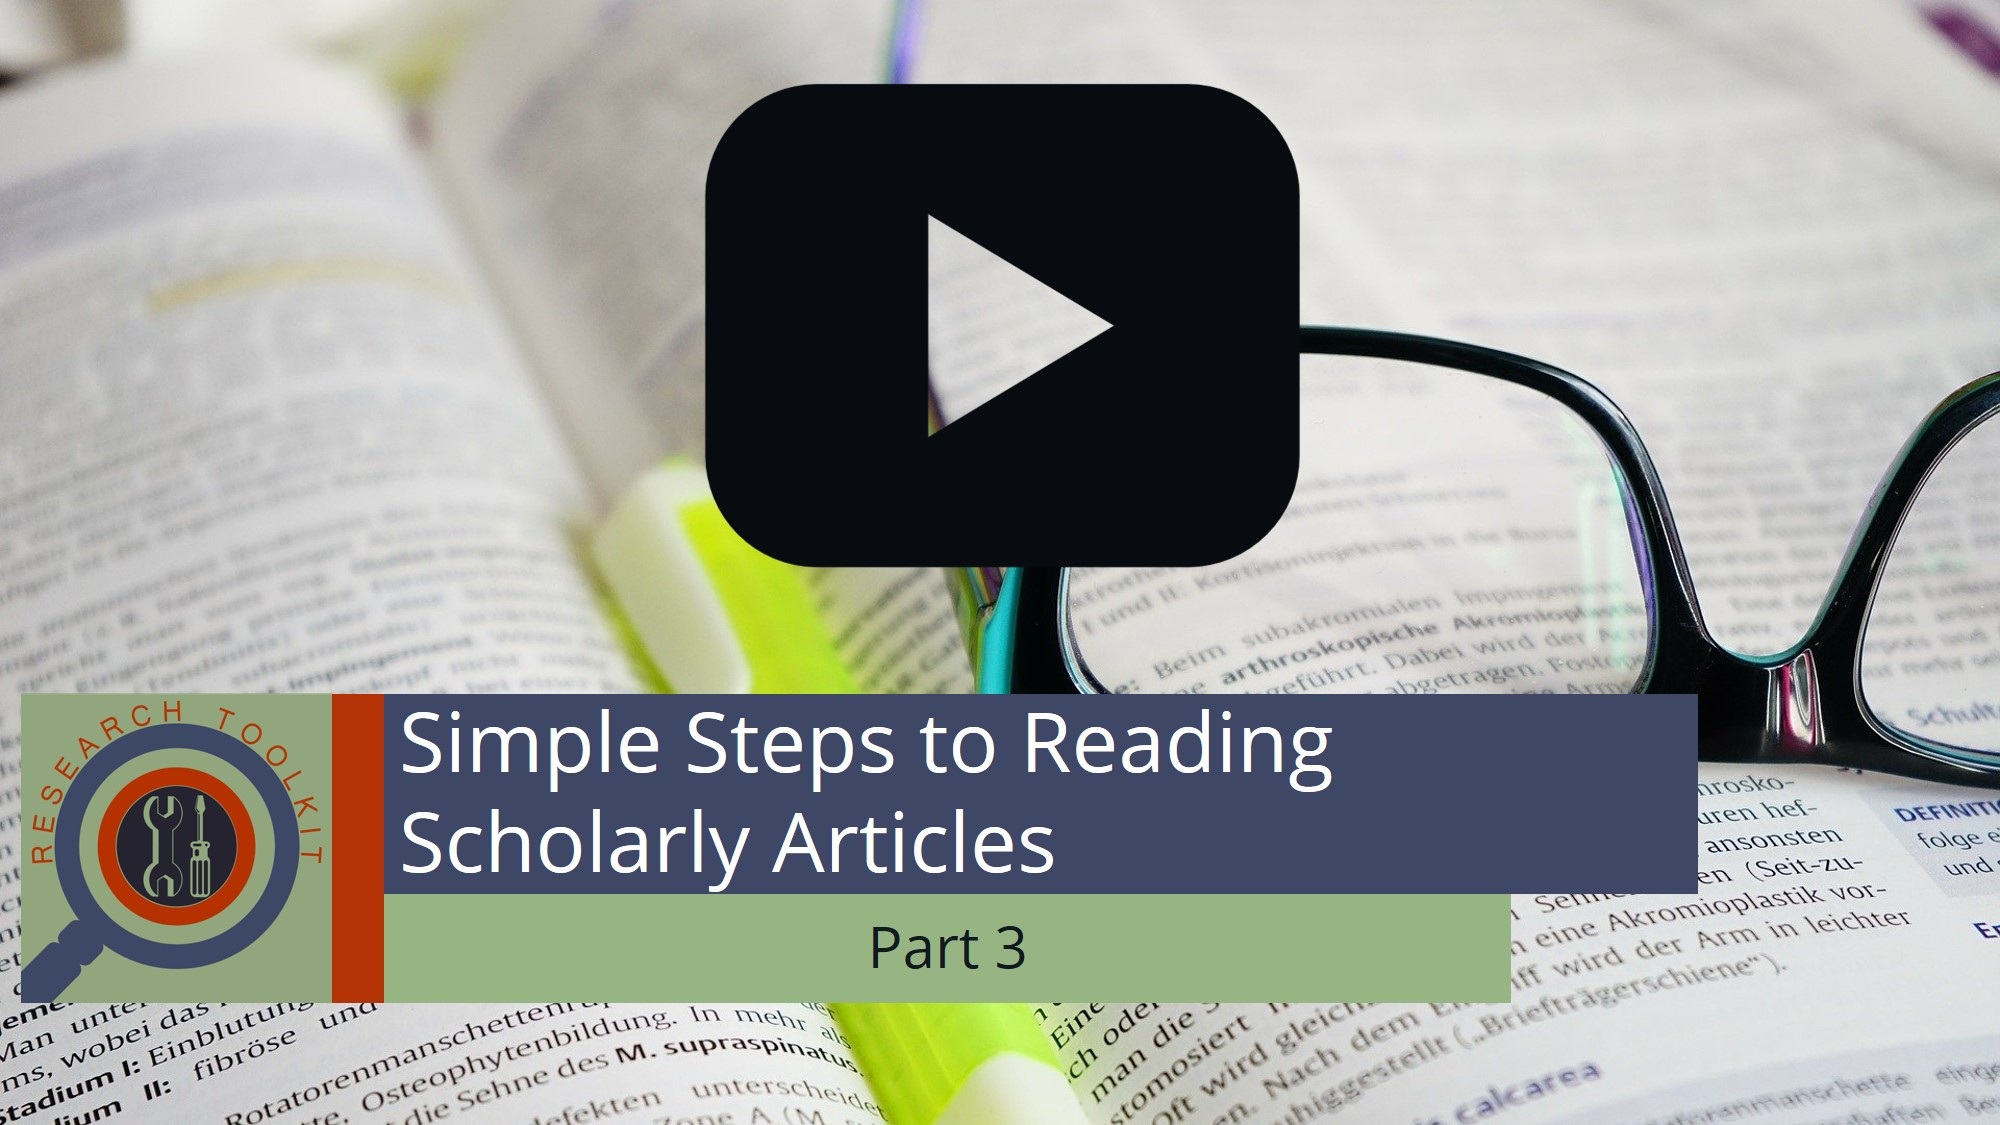 Simple Steps to Reading Scholarly Articles Part 3